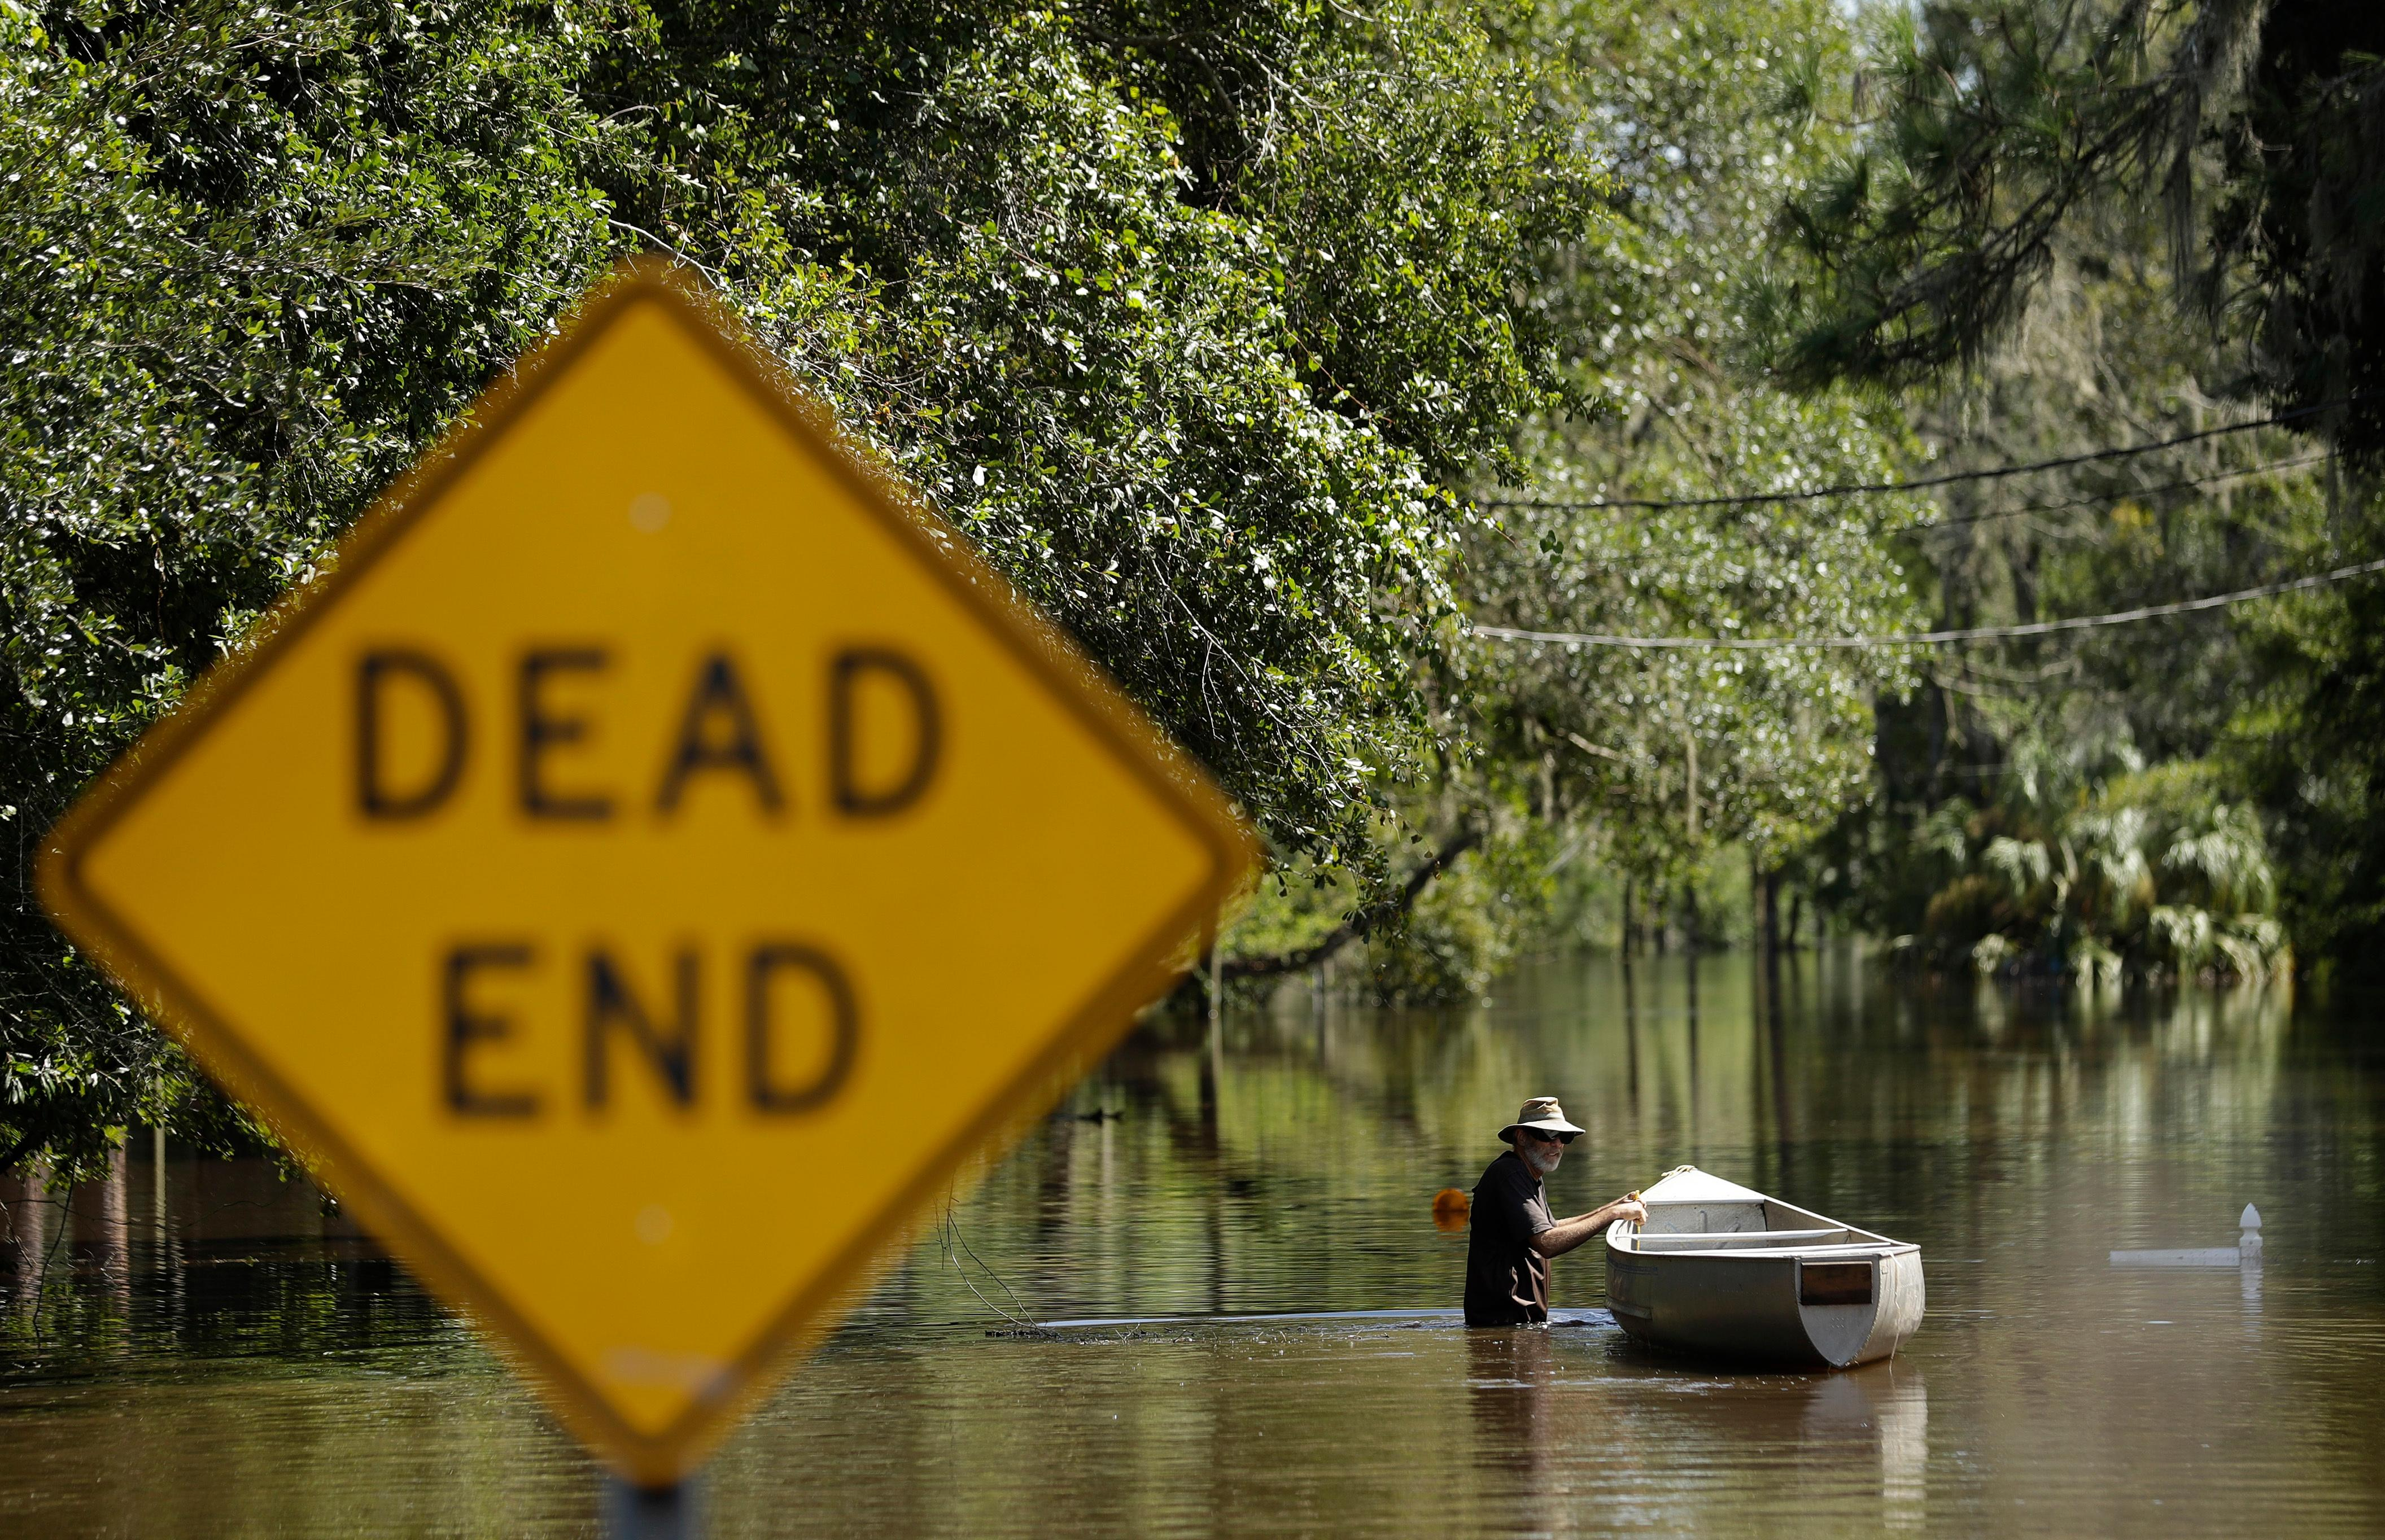 A man, who refused to be identified, pushes a canoe through water from the Alafia River Tuesday, Sept. 12, 2017, in Lithia, Fla. A storm surge from Hurricane Irma pushed water into the low lying area. (AP Photo/Chris O'Meara)